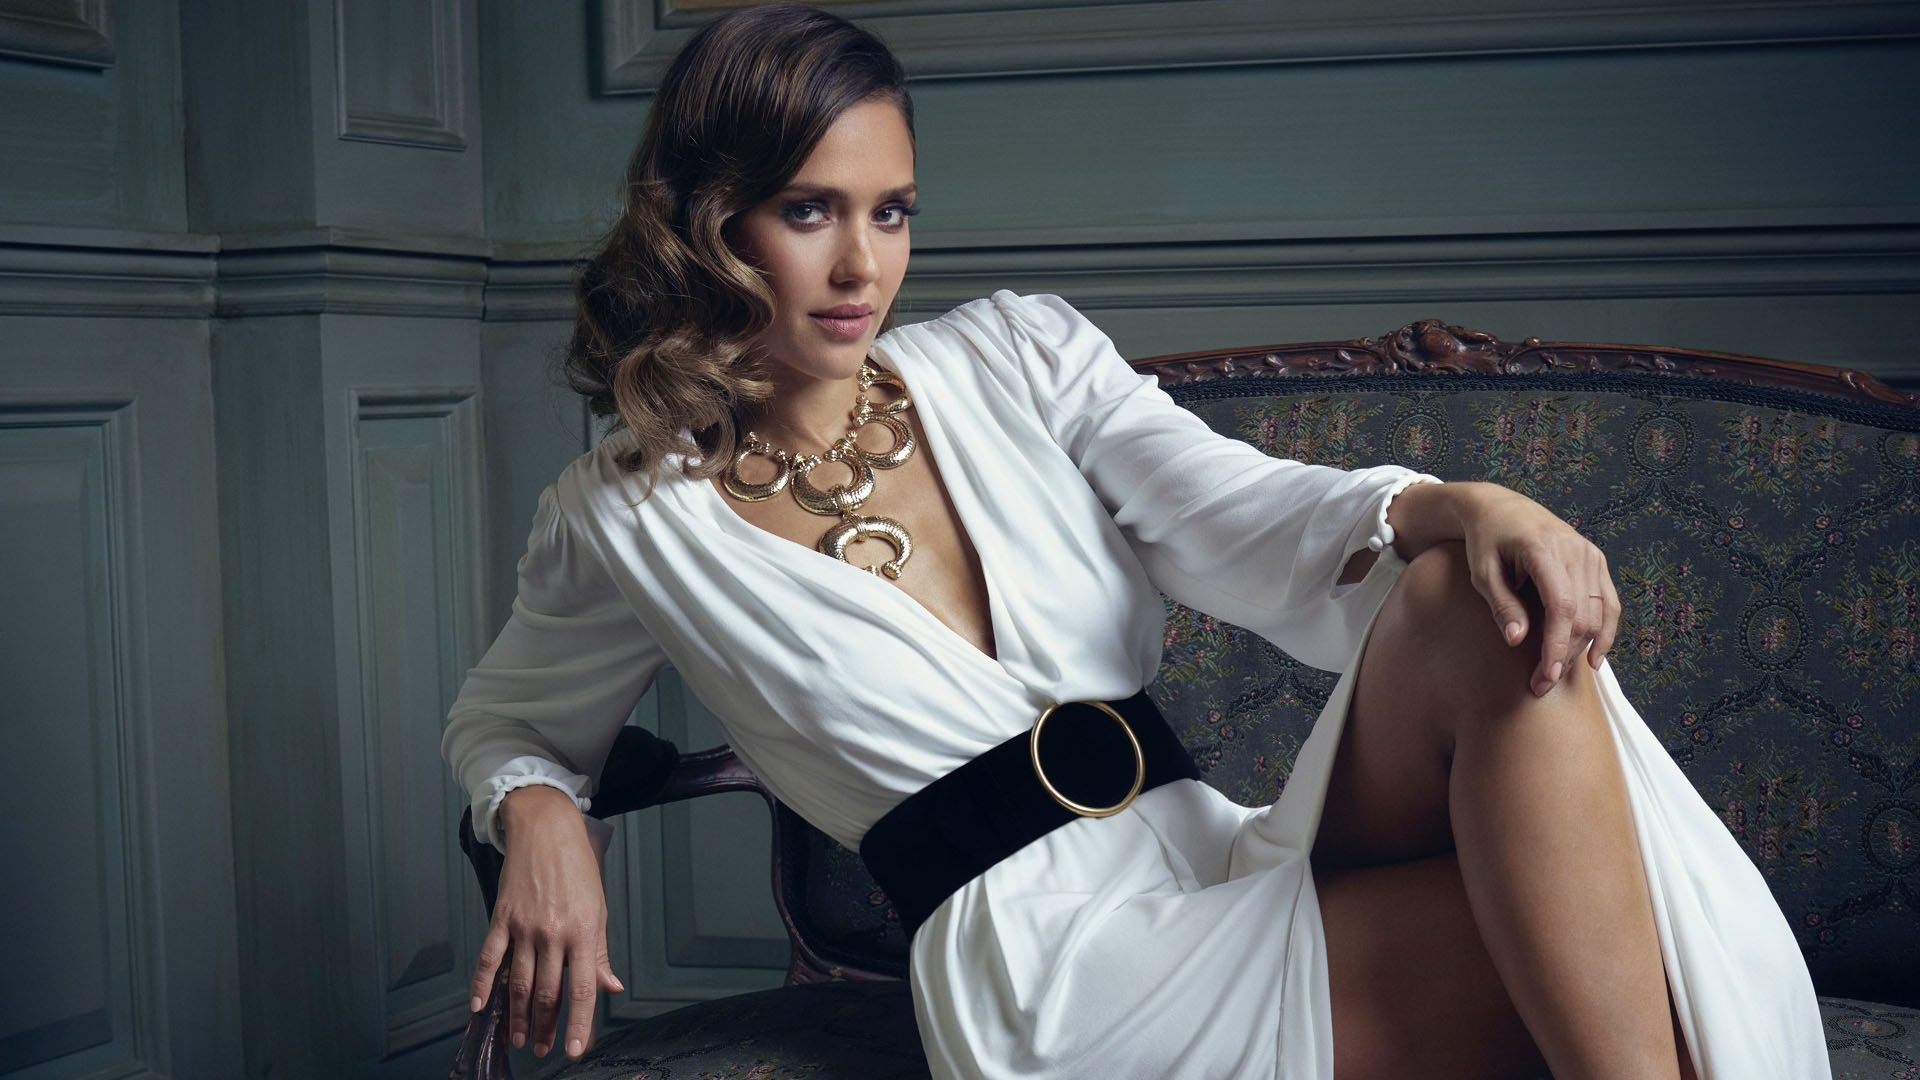 Jessica Alba Machete Celebrity Desktop Wallpaper jessica alba png